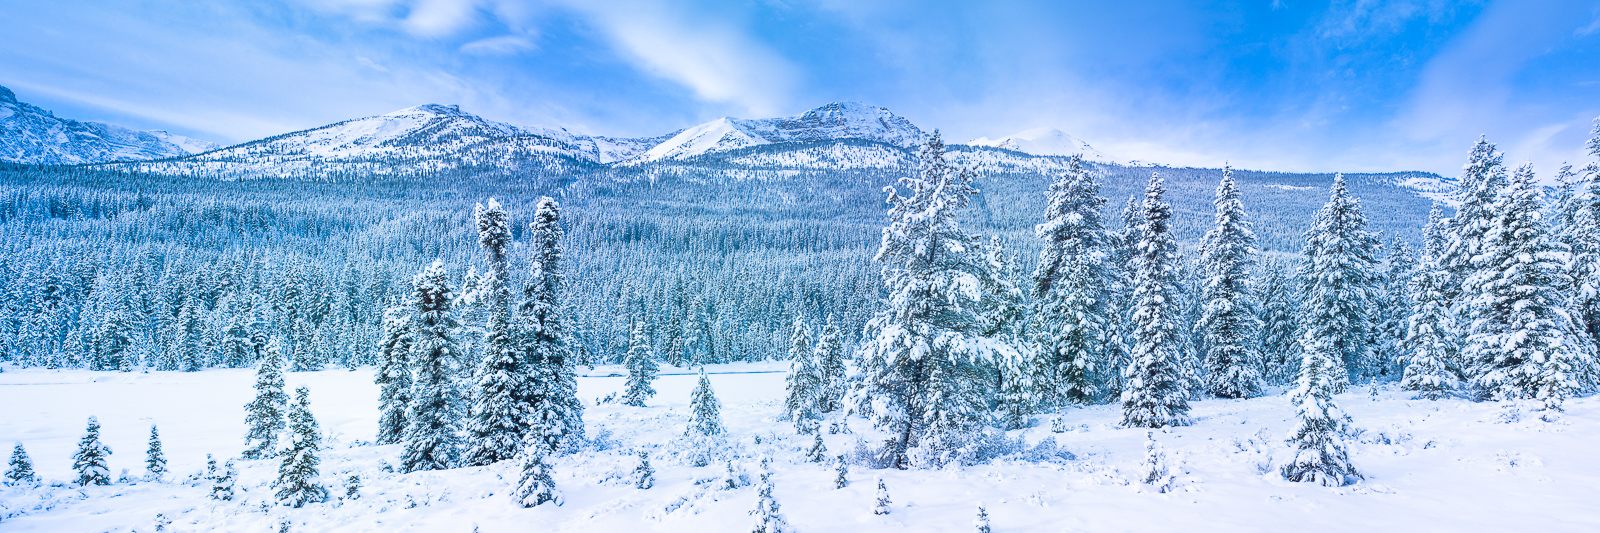 Winter Wonderland,Winter,wonderland,Jasper, park, Canada, panoramic, horizontal,blue, photo